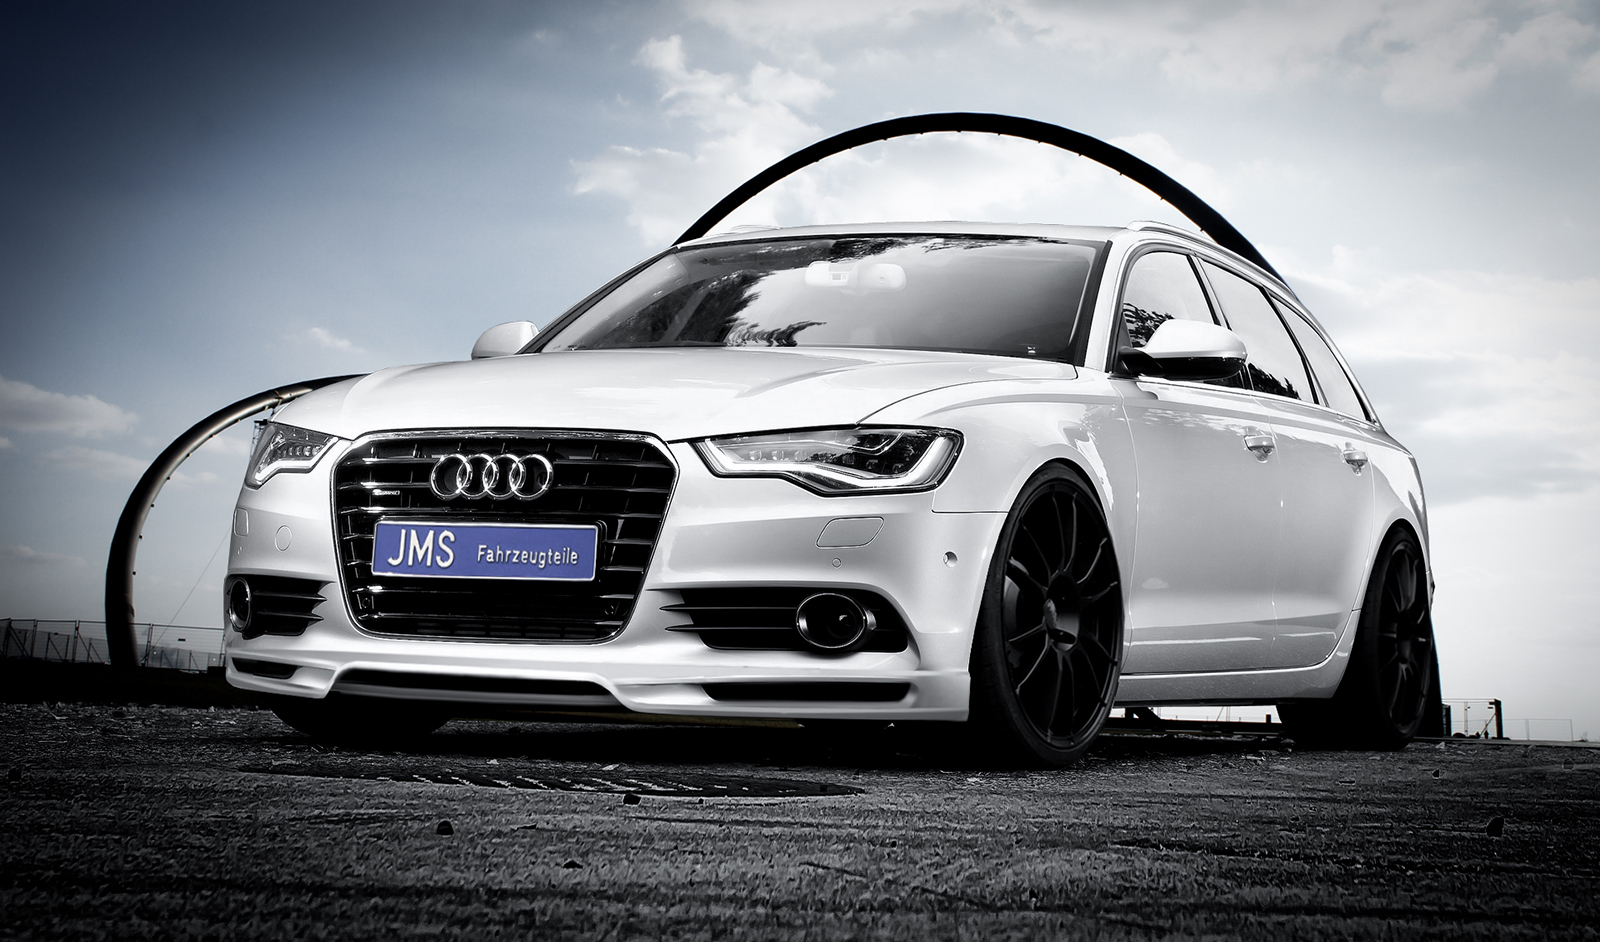 Audi A6 4g Tuning Styling From Jms Jms Fahrzeugteile Gmbh Press Release Pressebox